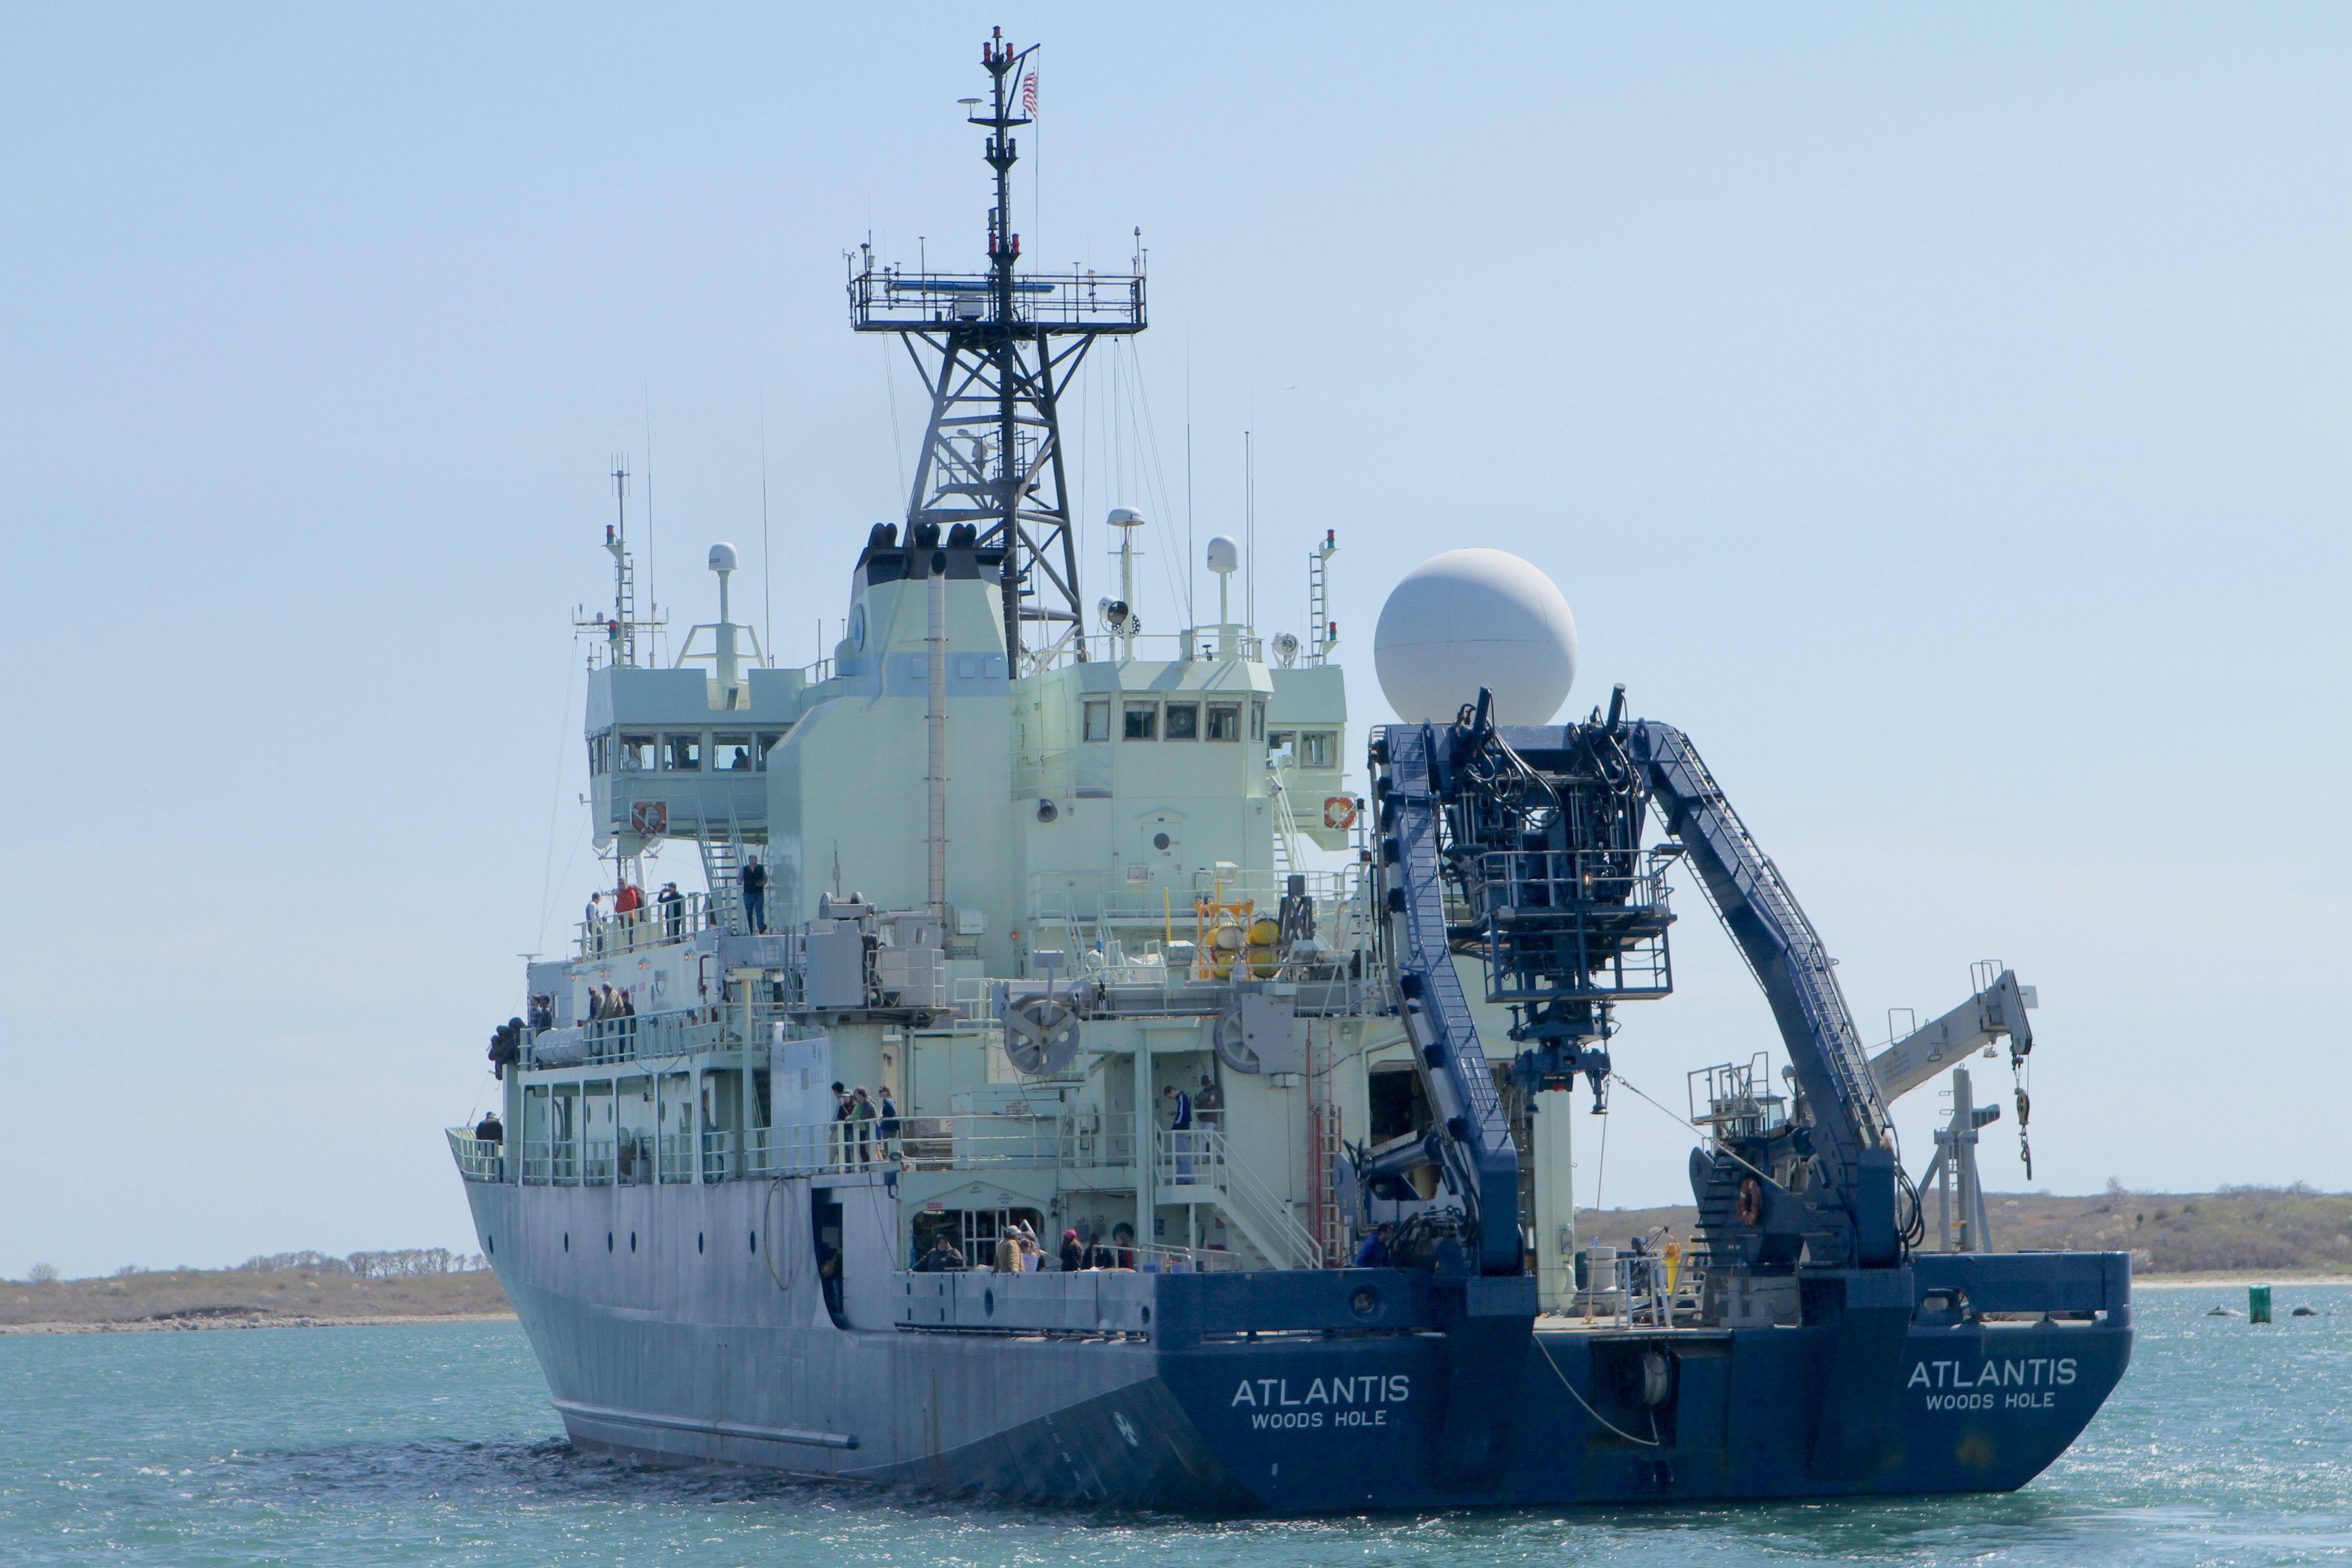 R/V Atlantis steaming away from Woods Hole on Wednesday, headed to the North Atlantic. Credit: Michael Starobin/NASA